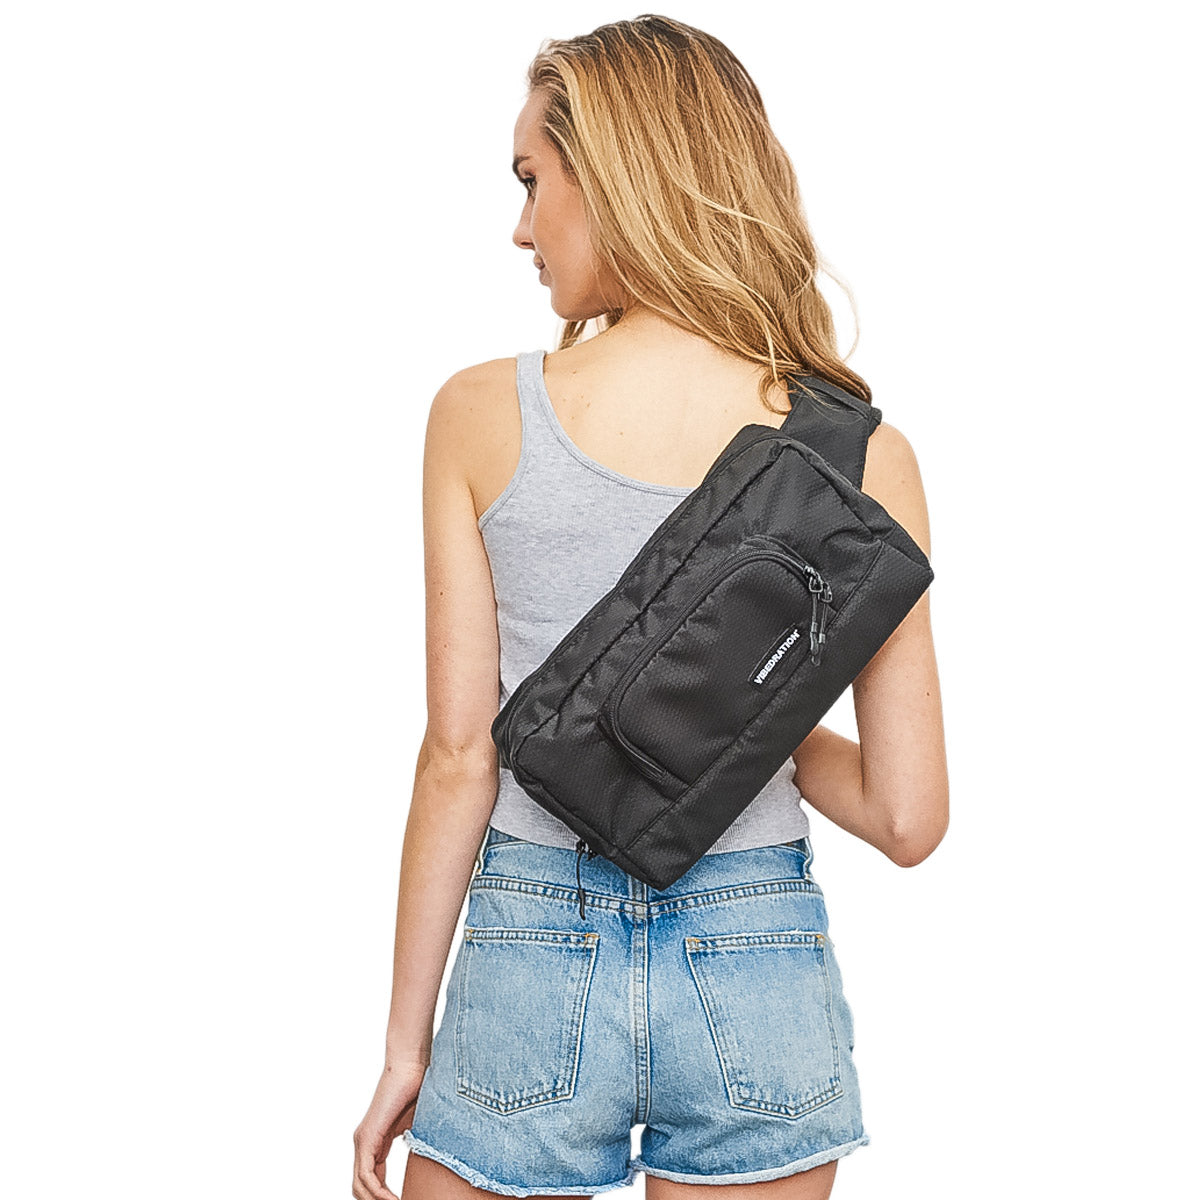 Black hex festival bag for women 1.5L